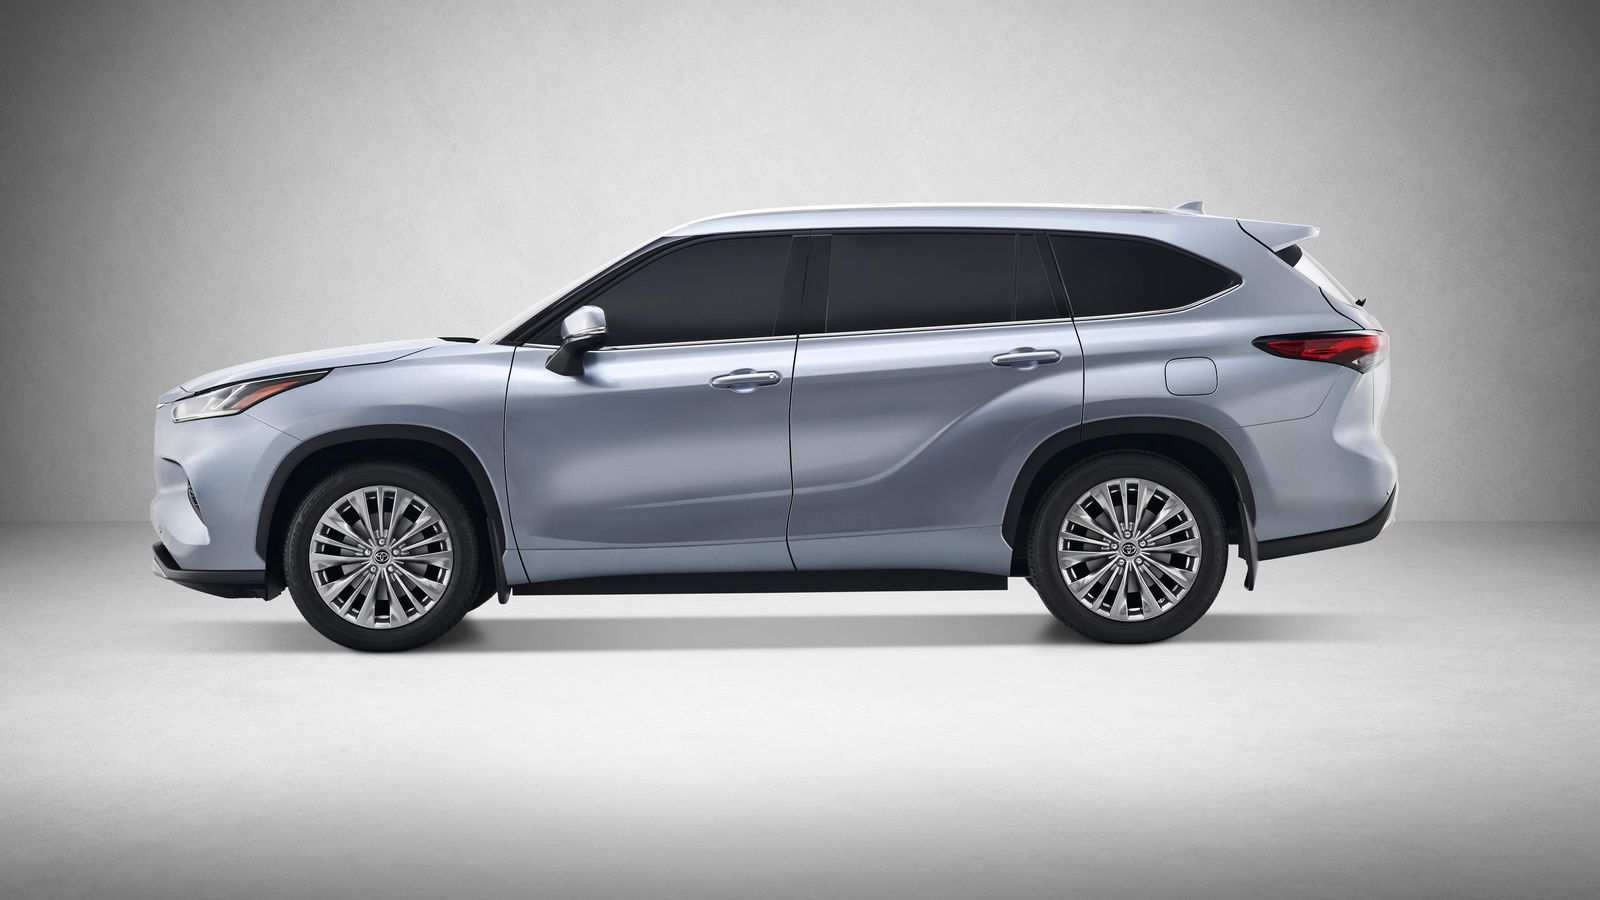 74 All New Toyota Kluger 2020 Price Exterior by Toyota Kluger 2020 Price